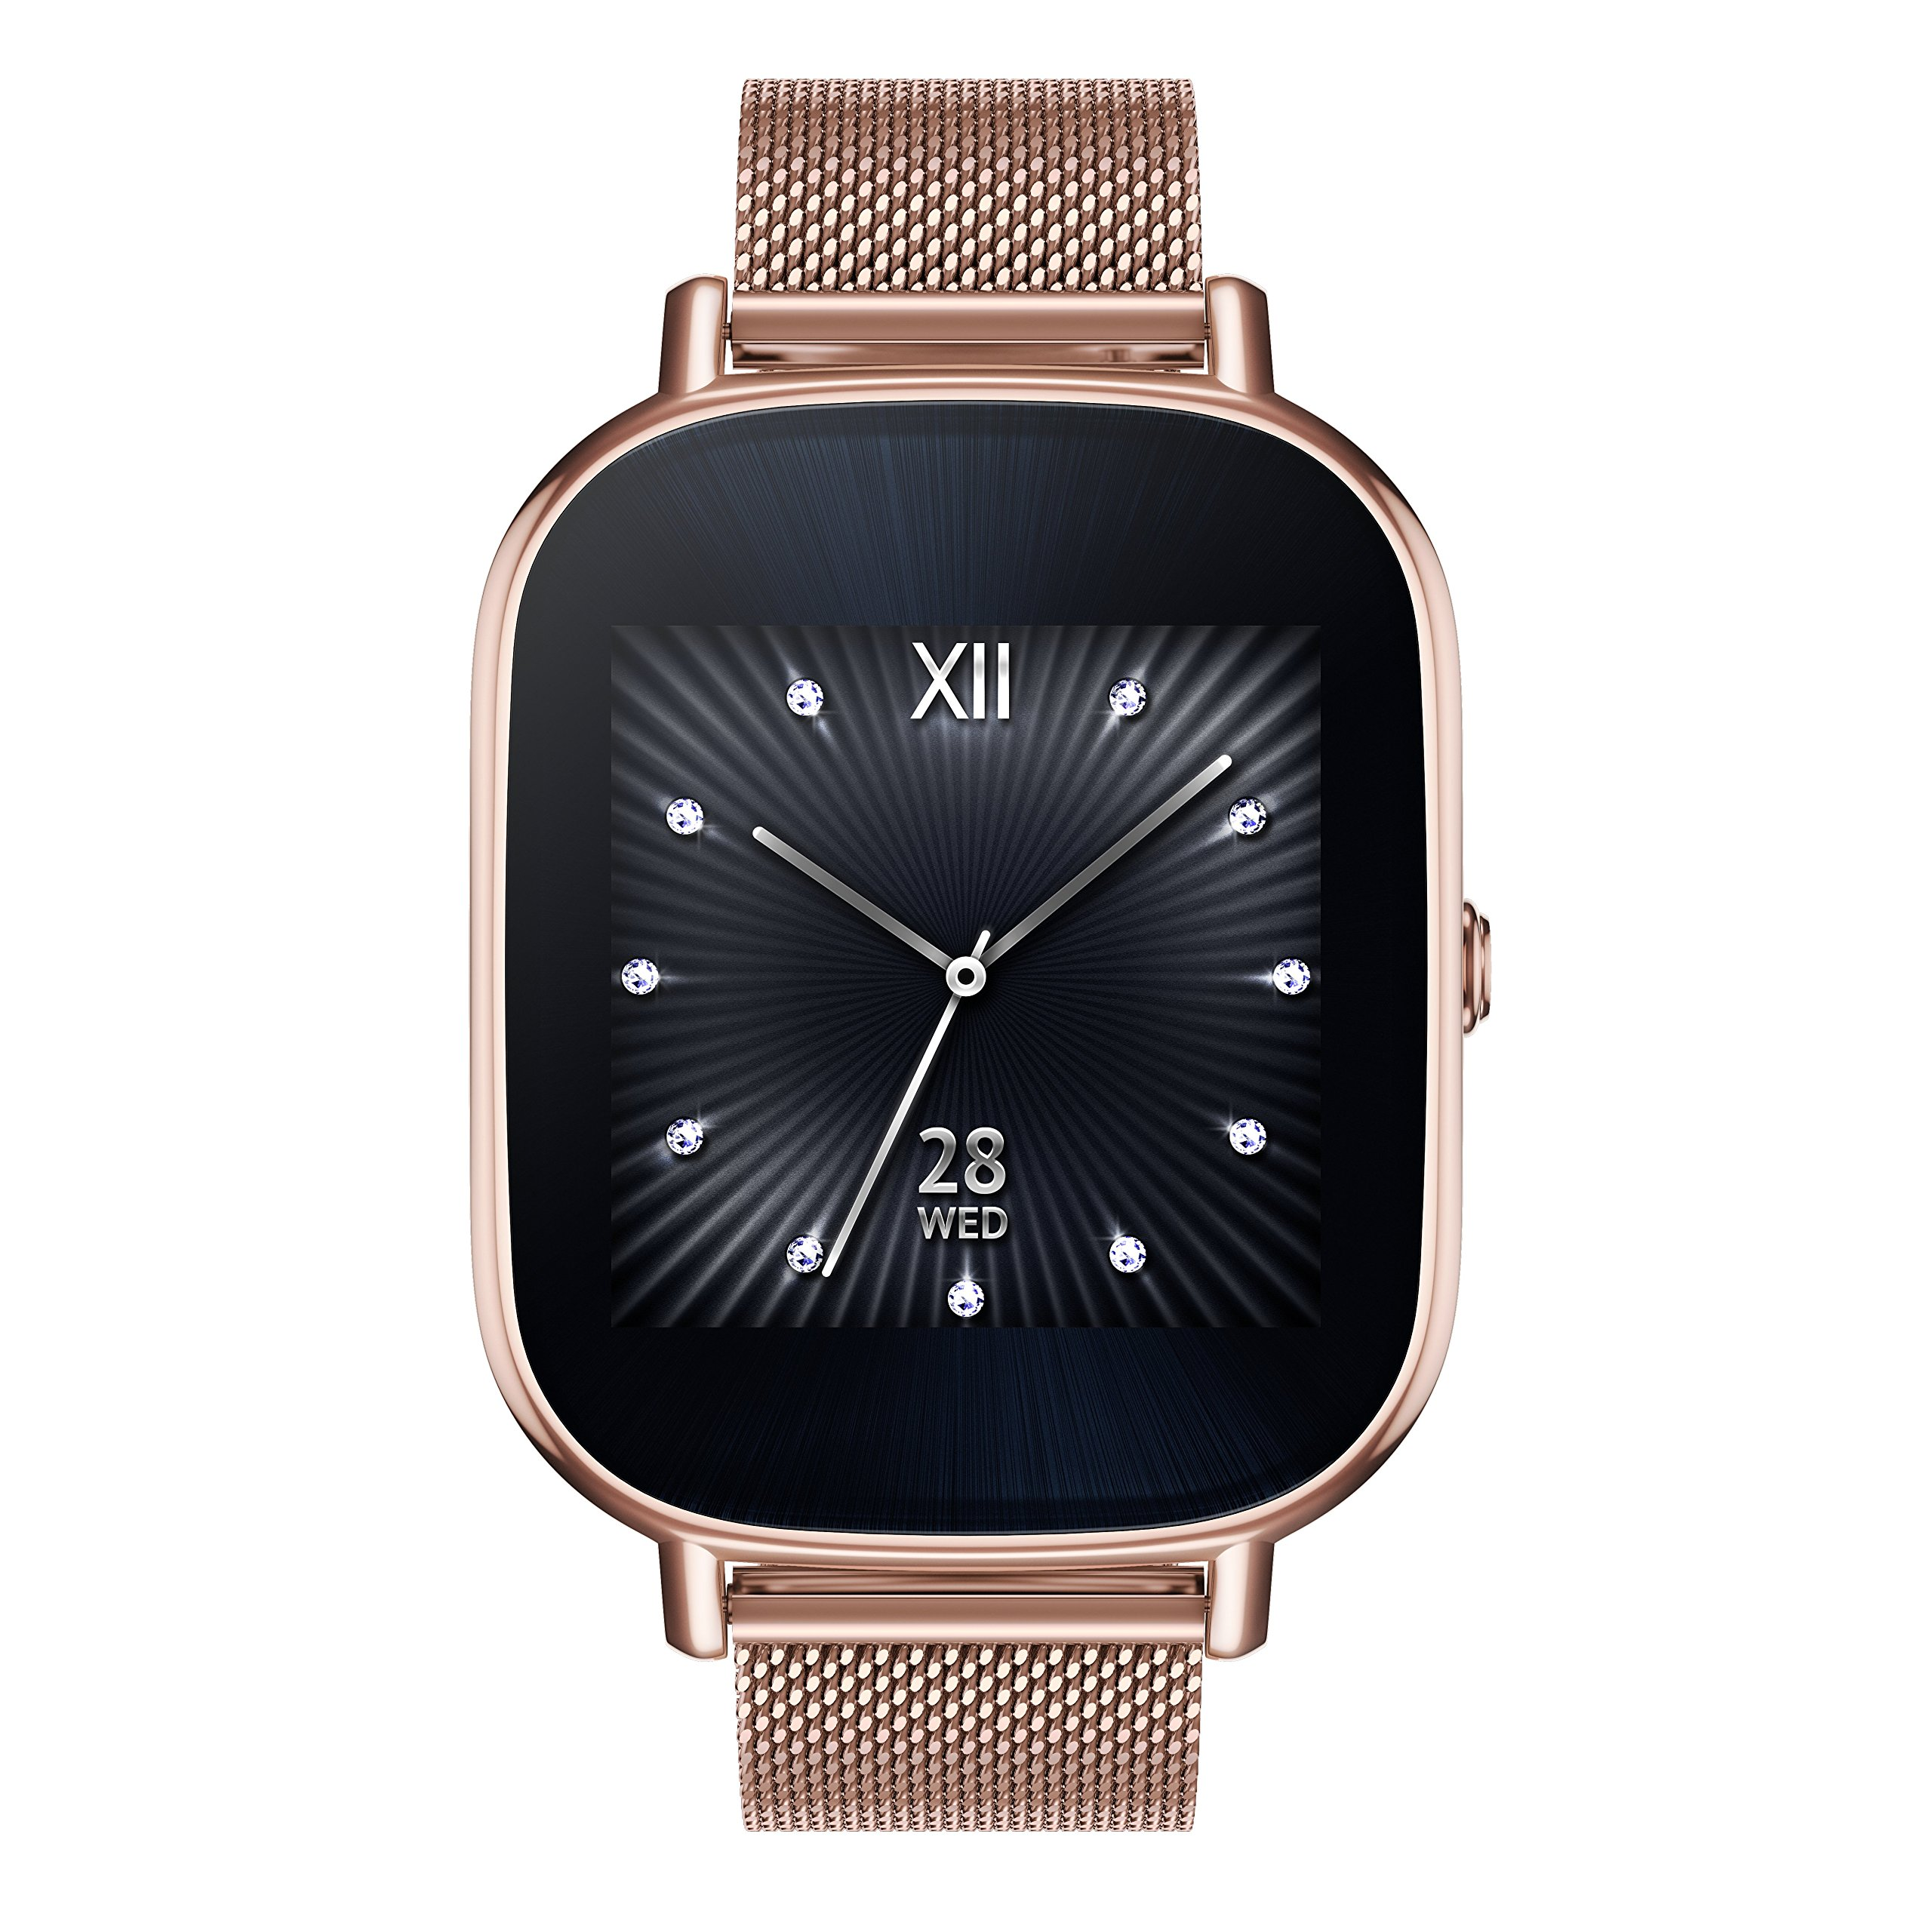 ASUS ZenWatch 2 Rose Gold 37mm Smart Watch with Quick Charge Battery, 4GB Storage, 1.45-inch AMOLED Gorilla Glass 3 TouchScreen, IP67 Water Resistant by Asus